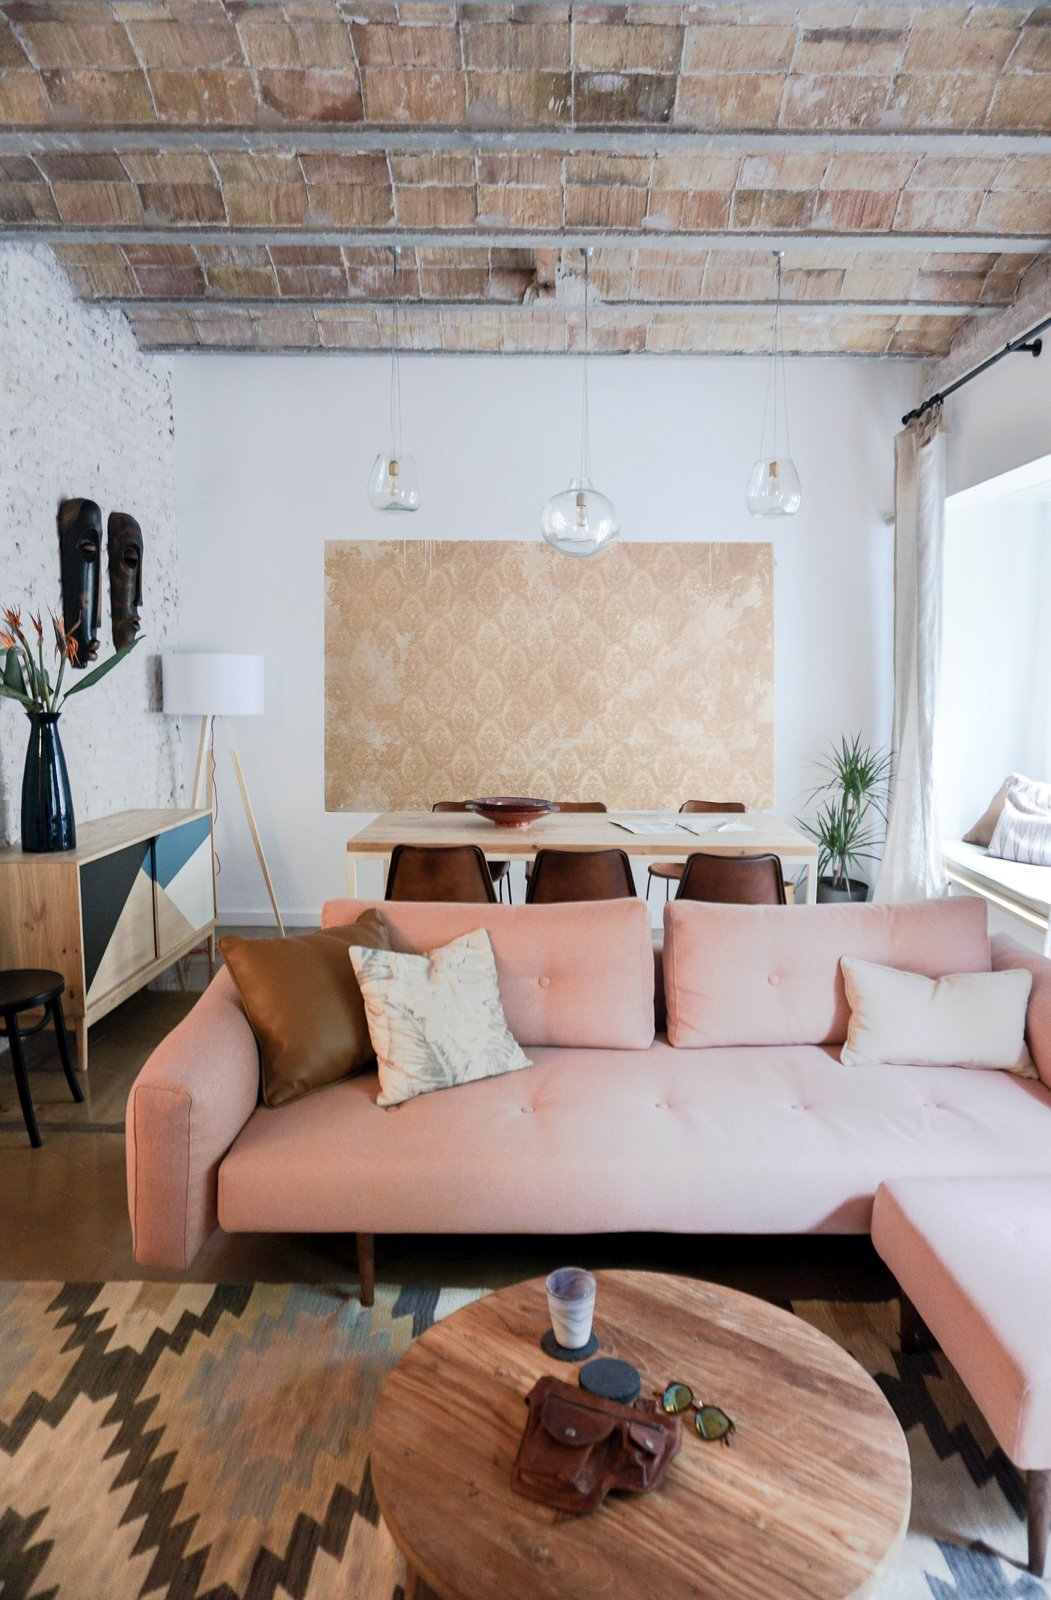 To make the space feel brighter, all of the walls—even bricks—are painted white, which contrasts with the raw brick ceiling and original brown tile floors. The Recast Plus sofa bed, with a pink hue that echoes the brick ceiling, is from Innovation Living. The blown-glass Gordiola pendants are a design the resident saw in a Mallorca hotel that Bloomint designed. A Barcelona Apartment Gets a Softly Modern Renovation - Photo 2 of 9